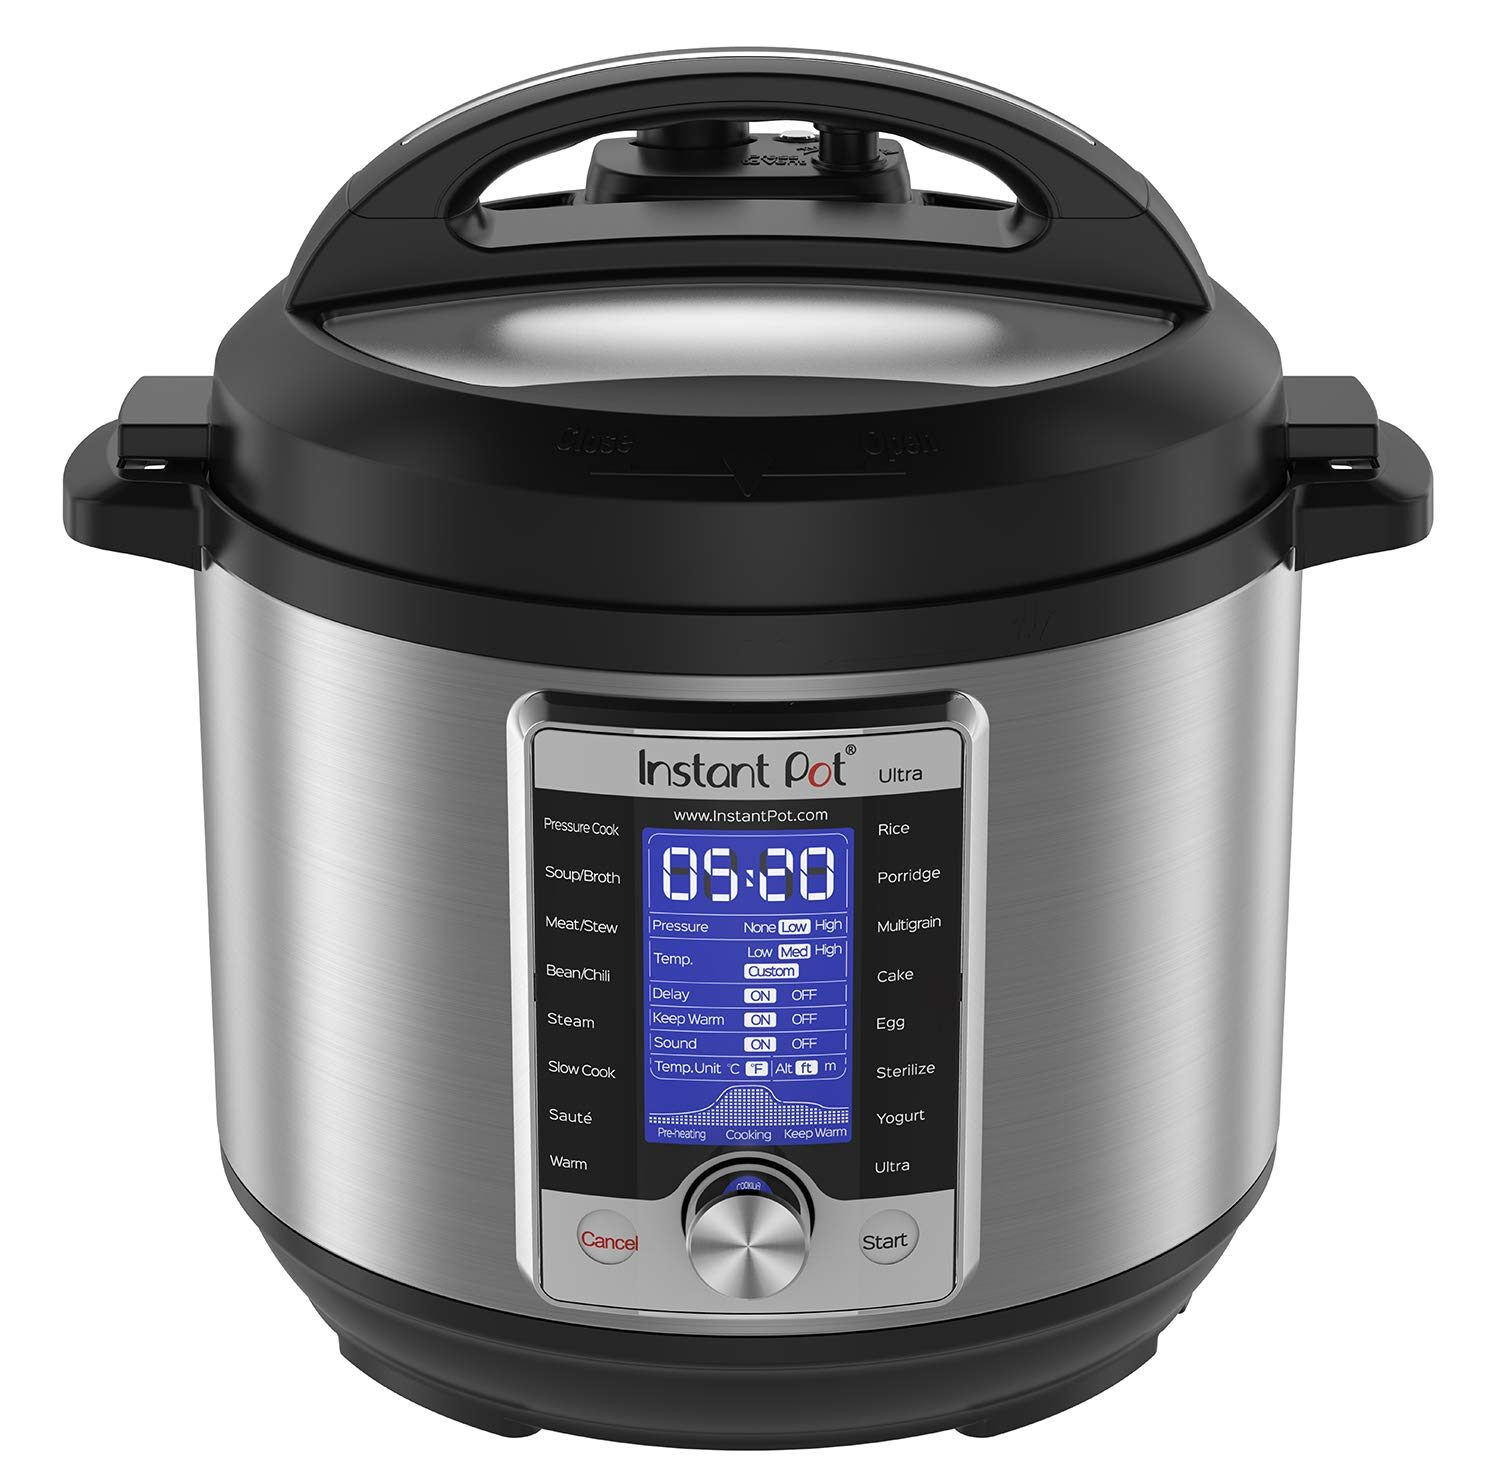 Instant Pot Ultra 10-in-1 Cooker - 22 Awesome Amazon Finds to Help Make Life Easier